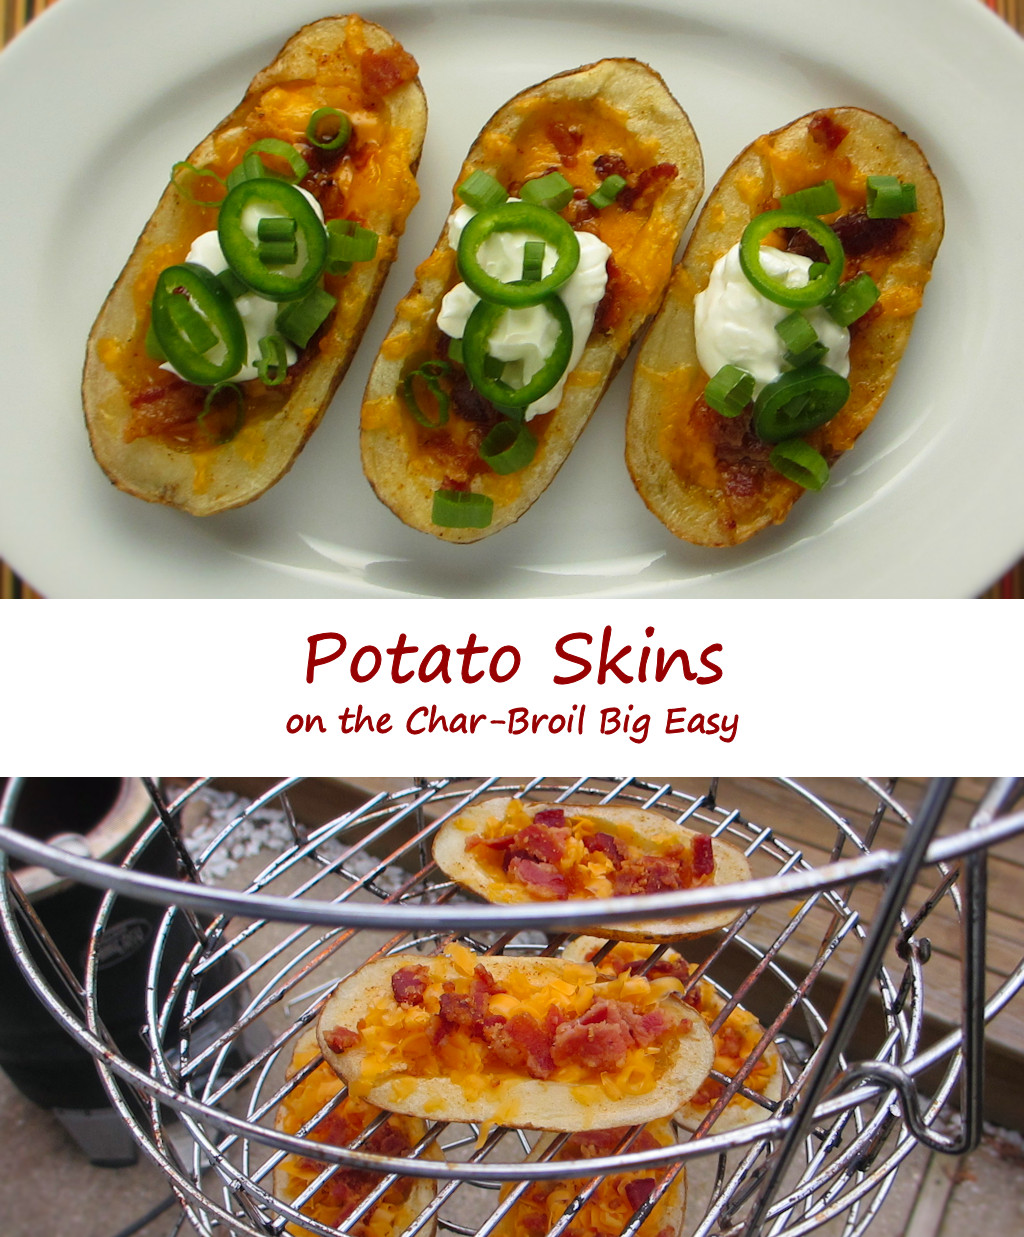 Potato Skins on the Char-Broil Big Easy